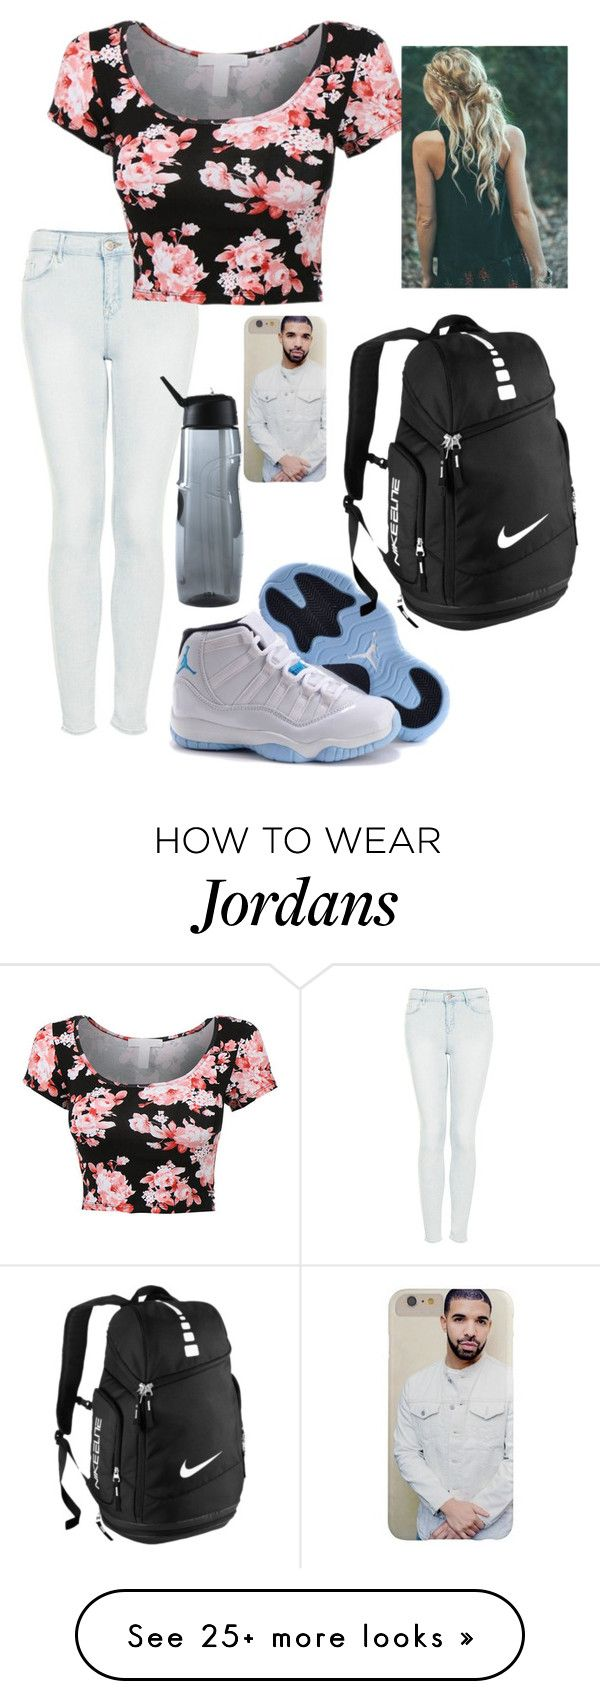 """OOTD 10/1/15"" by kirstinv1226 on Polyvore featuring Topshop and NIKE"